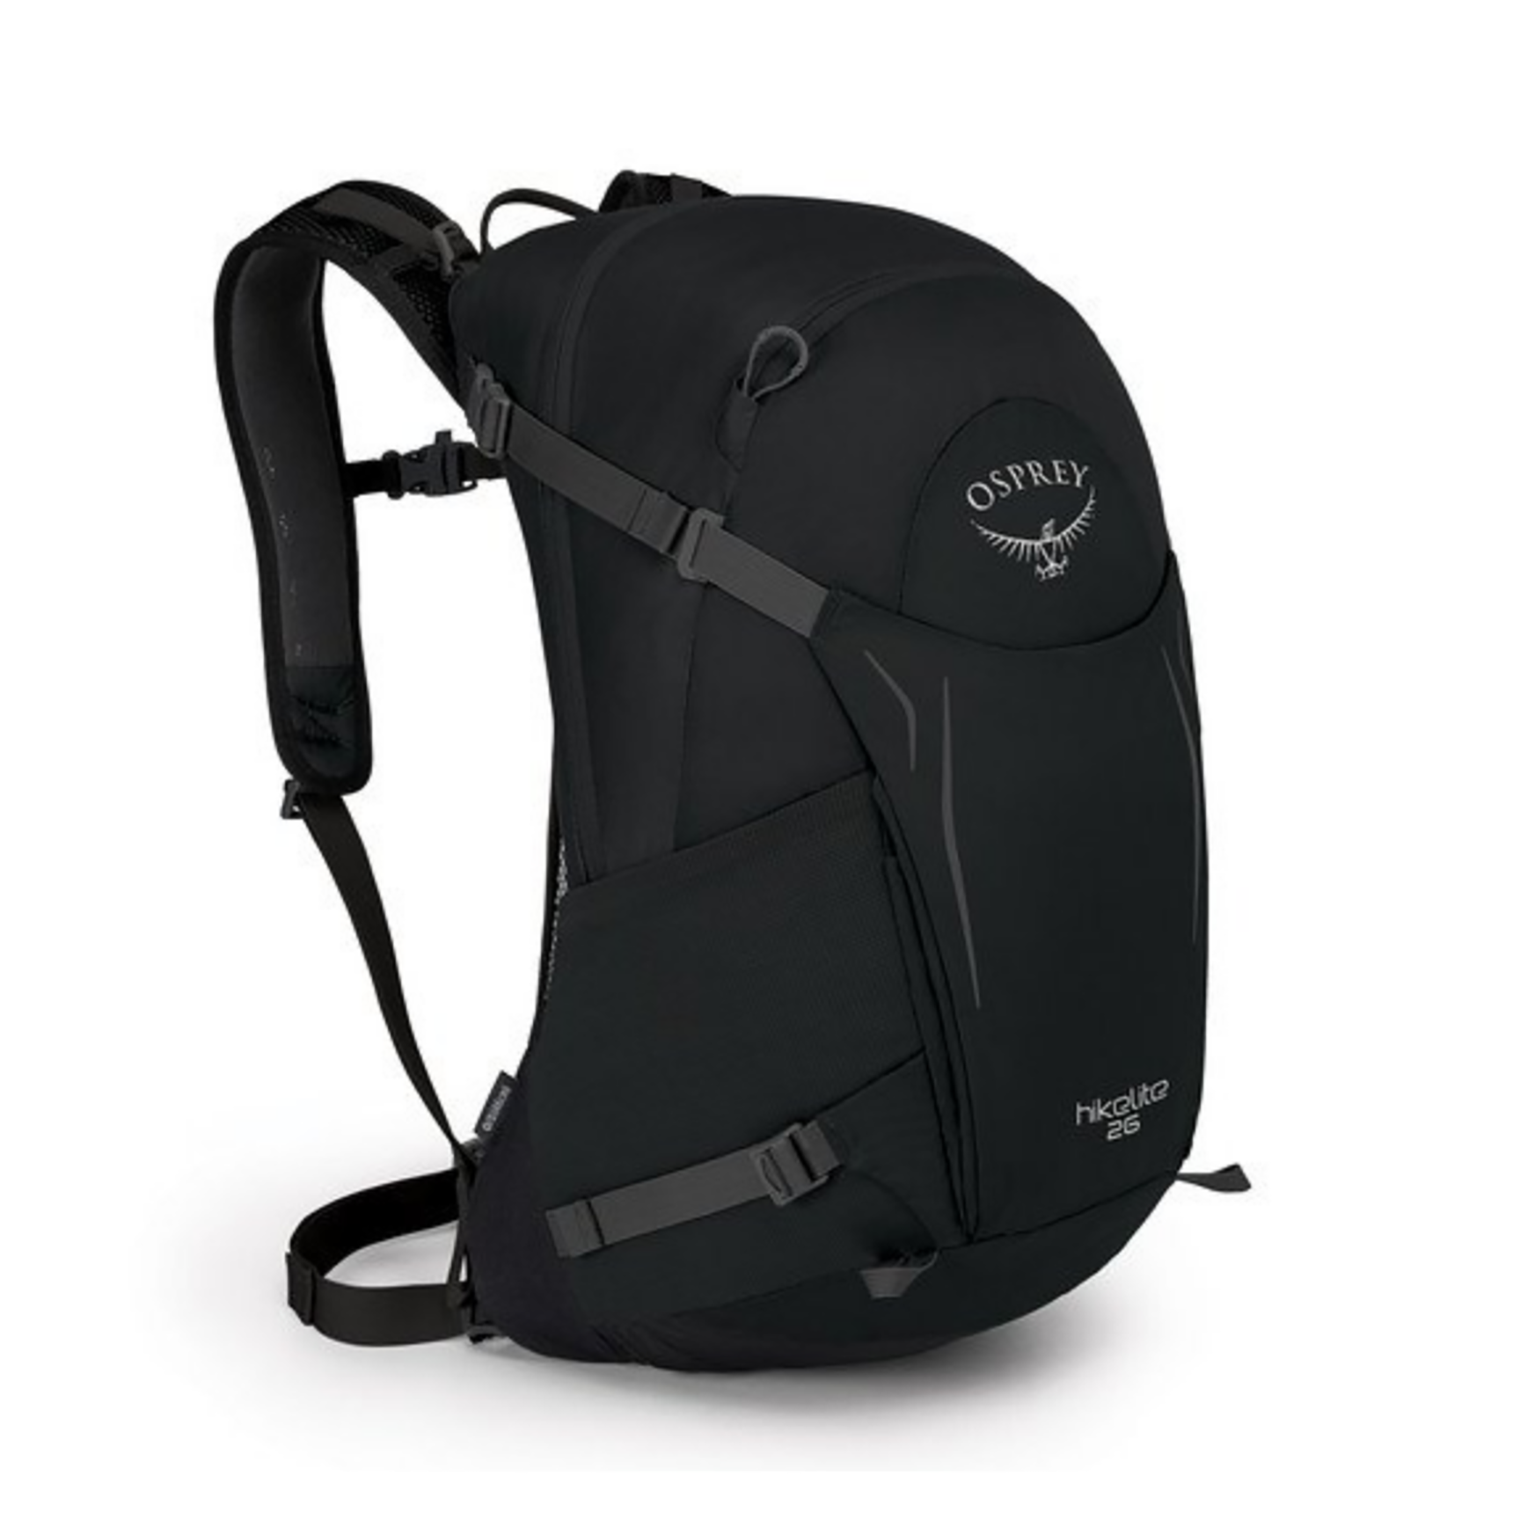 Osprey Hikelite 26, Black